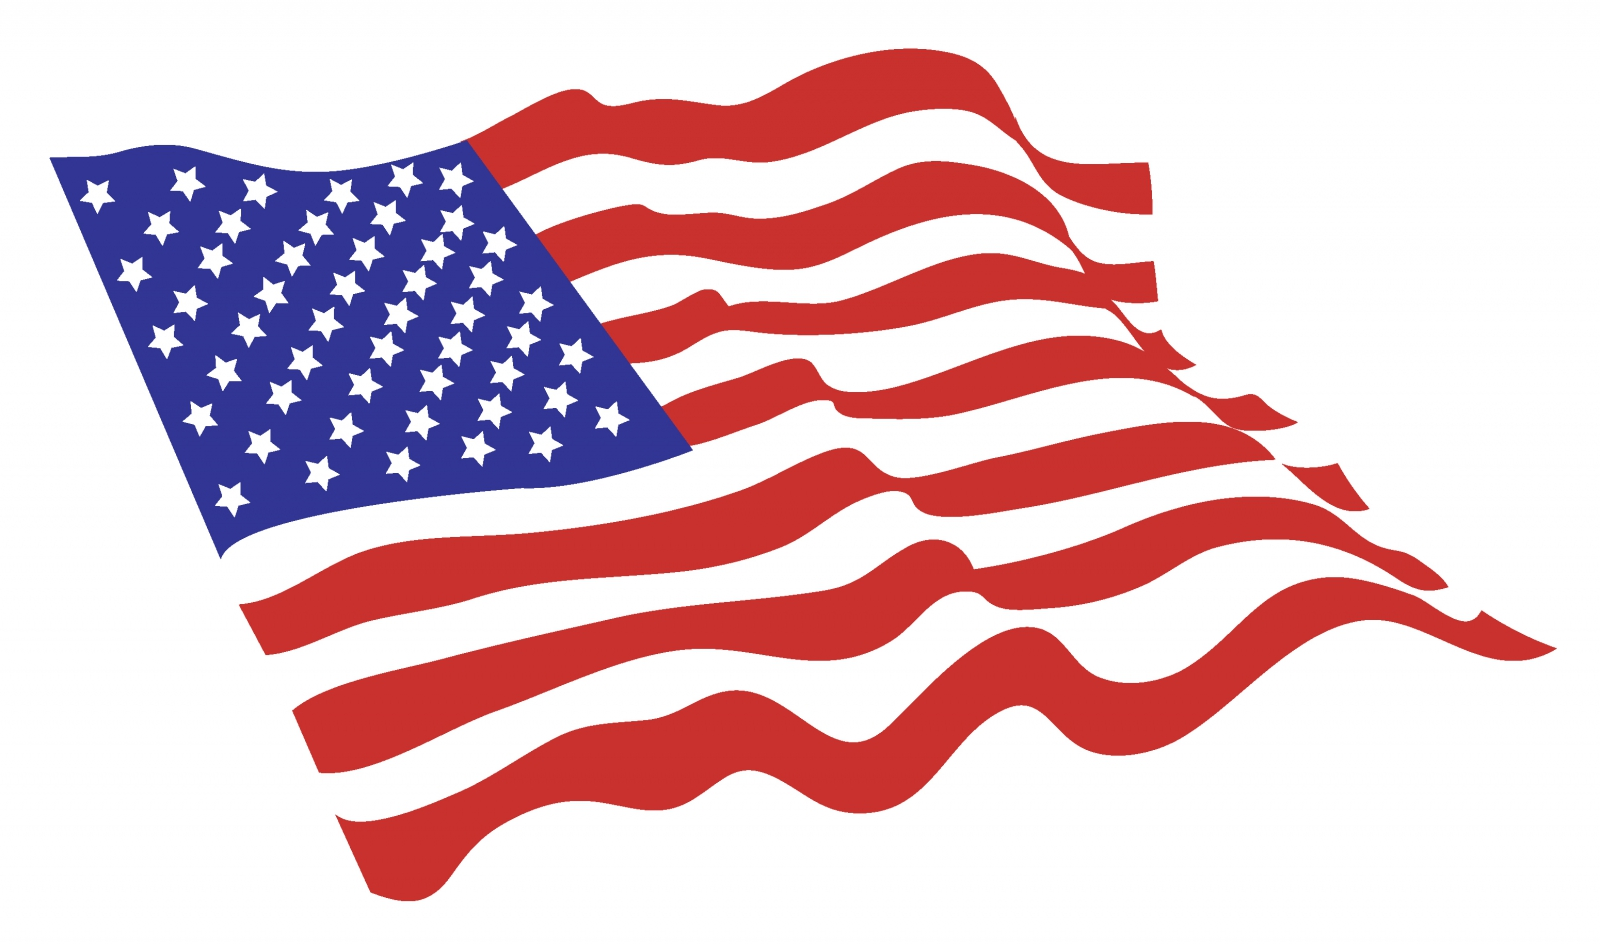 American flag clipart free download picture royalty free download 11 American Flag Vector Free Download Images - American Flag Vector ... picture royalty free download